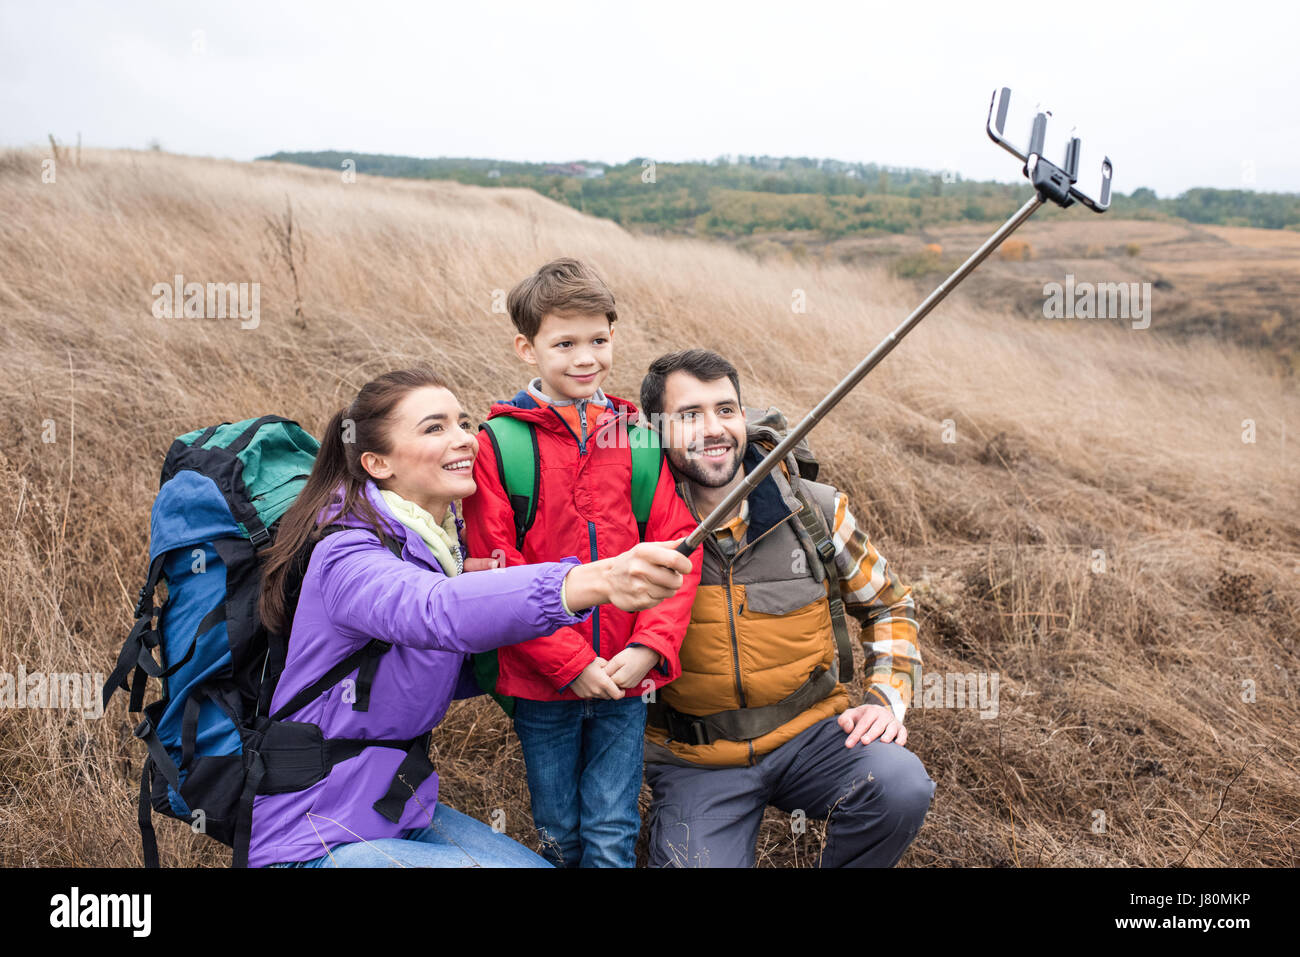 Happy family with backpacks in tall dry grass taking selfie in rural area - Stock Image